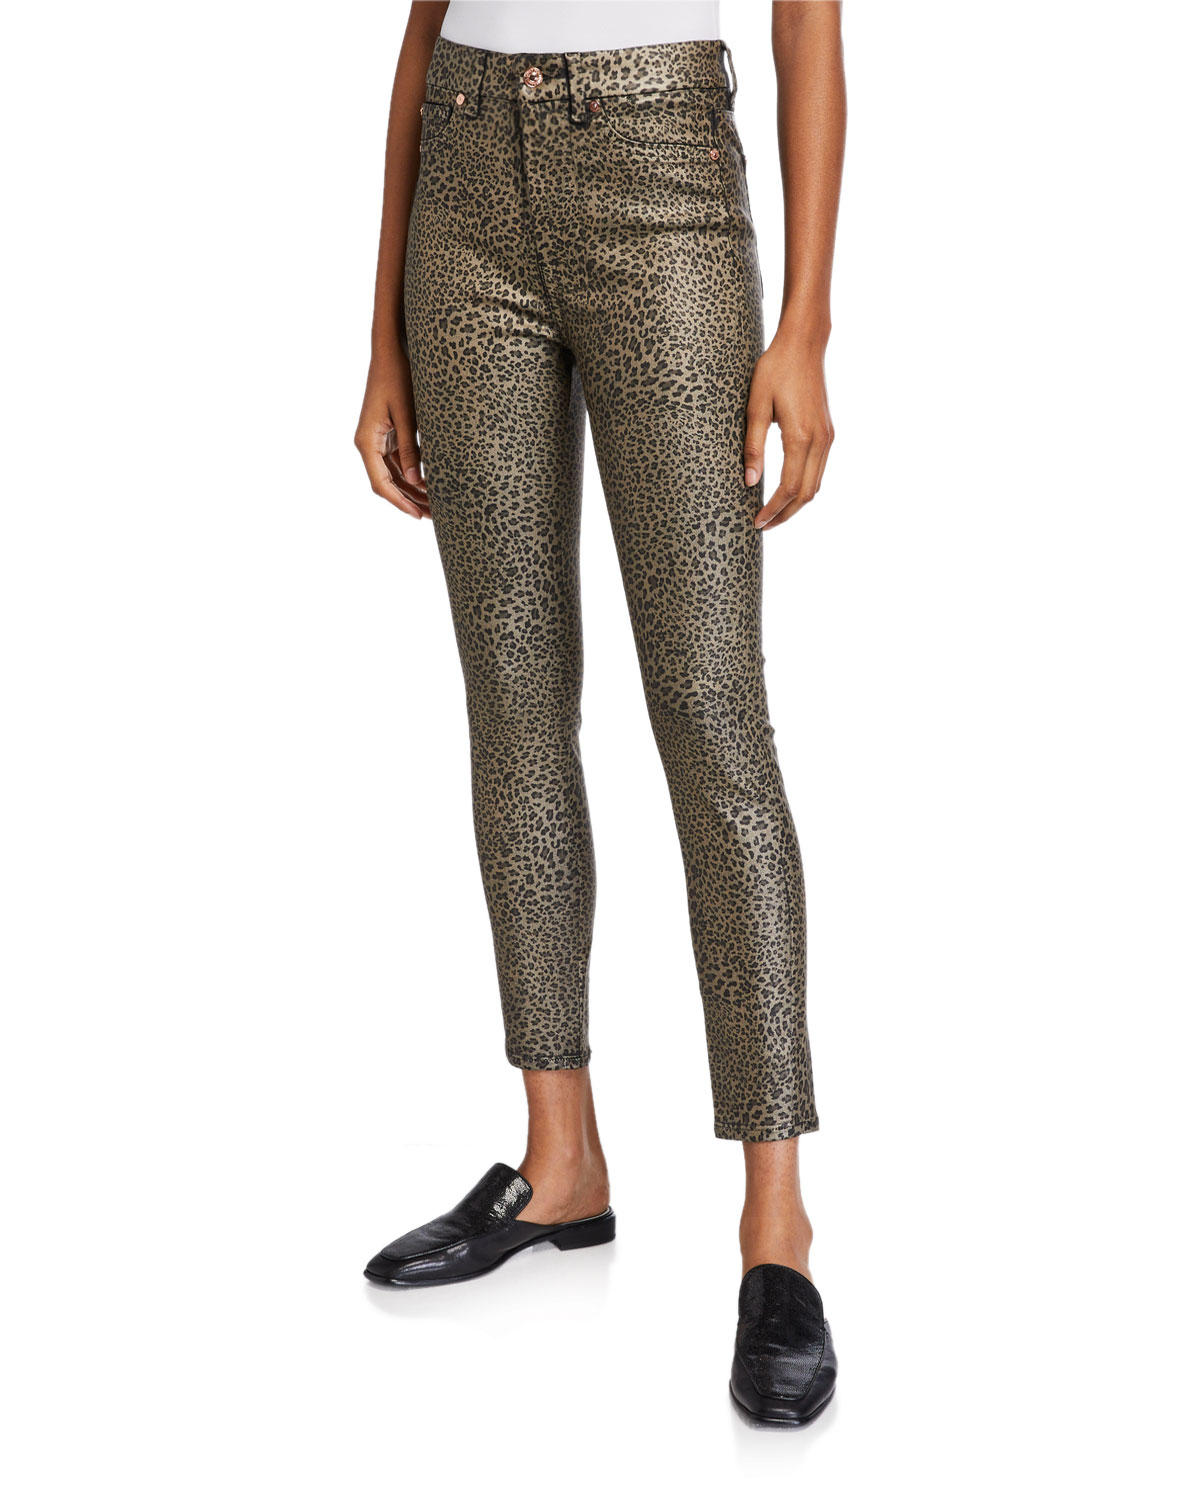 7 For All Mankind High-Waist Coated Ankle Skinny Jeans In Leopard